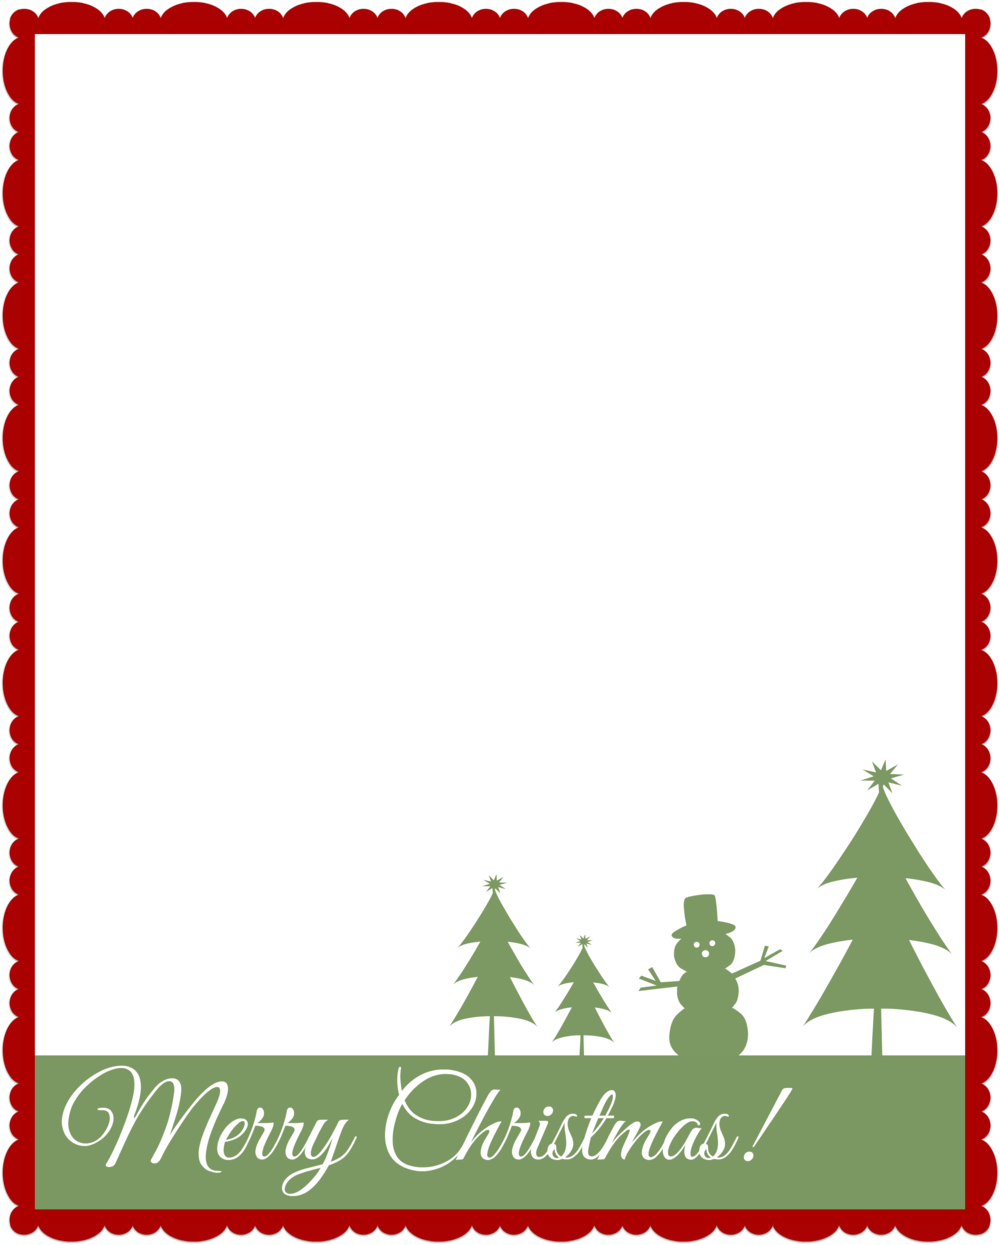 Fun Christmas letter template!